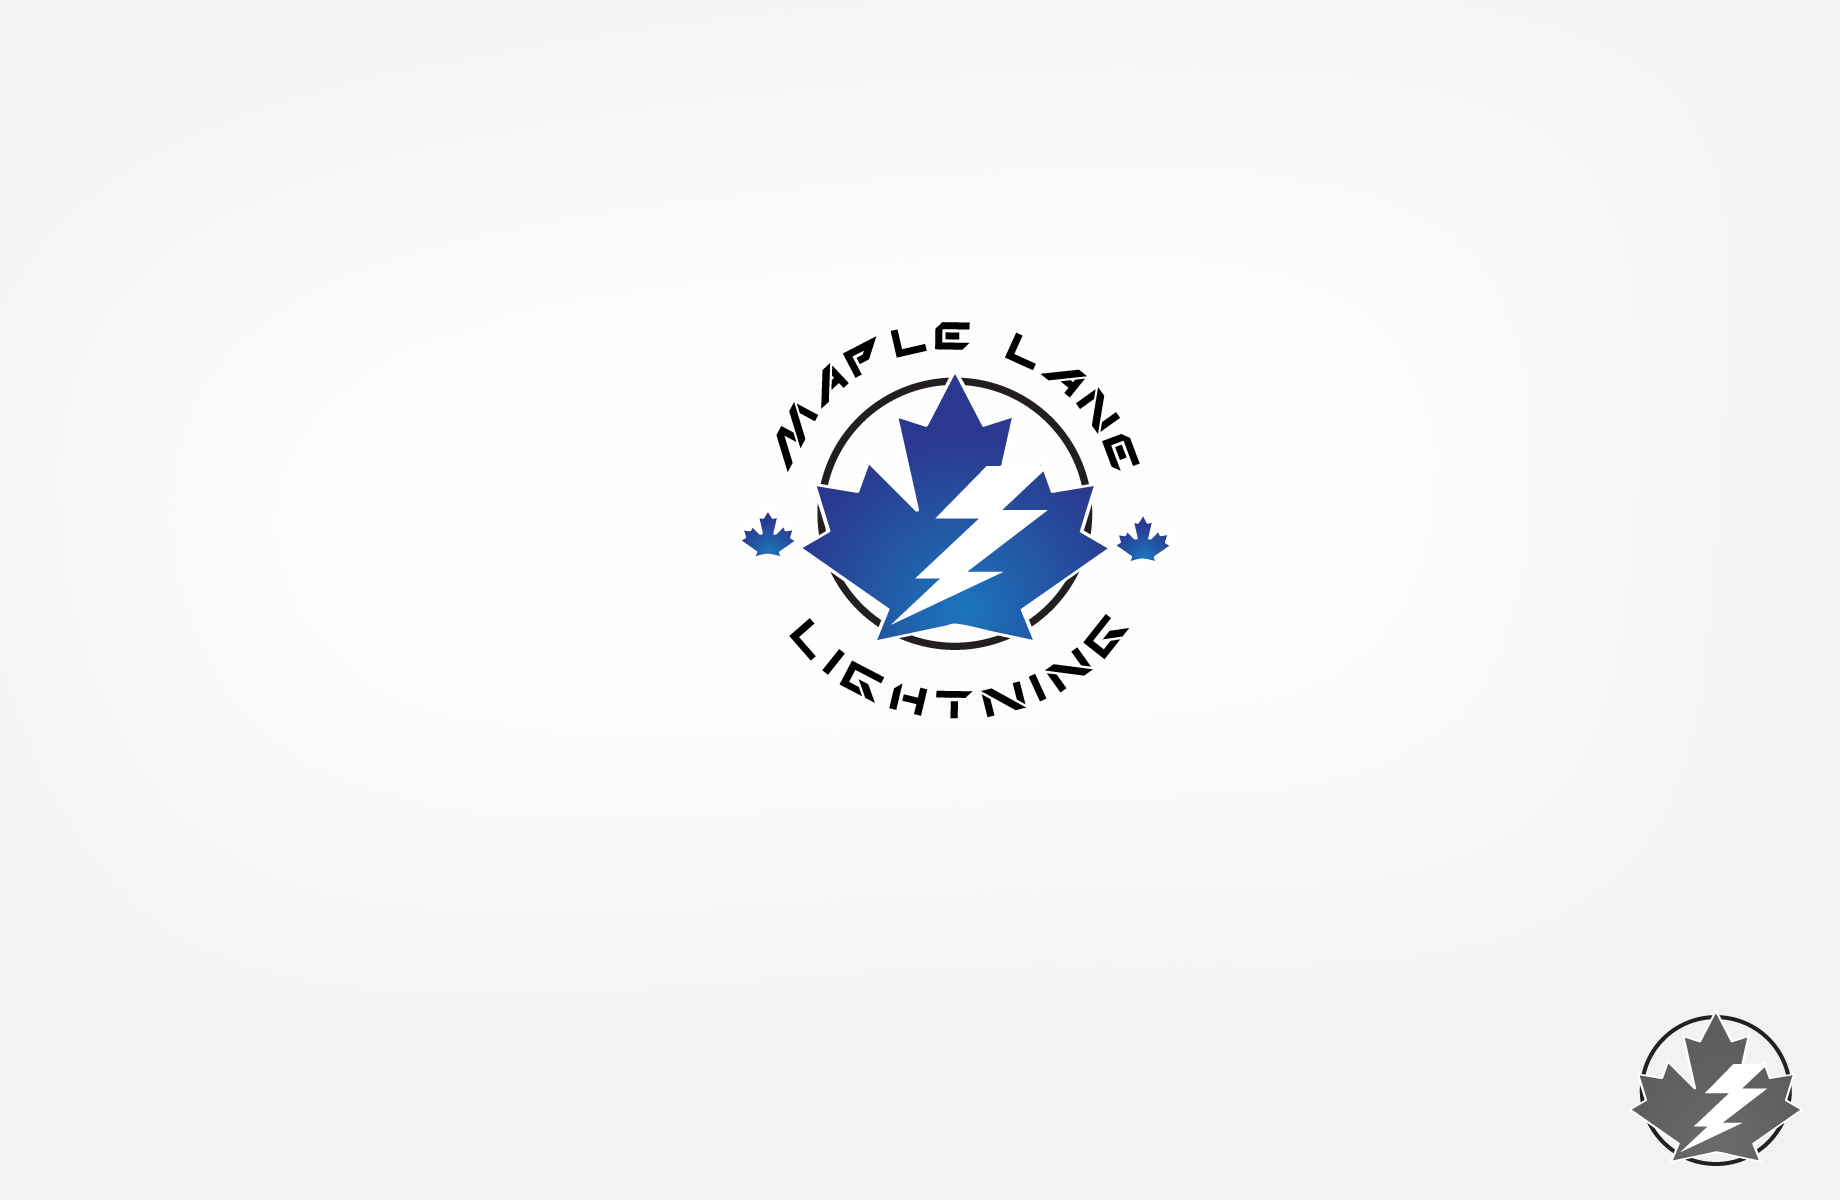 Logo Design by Jan Chua - Entry No. 32 in the Logo Design Contest Maple Lane Logo Design.